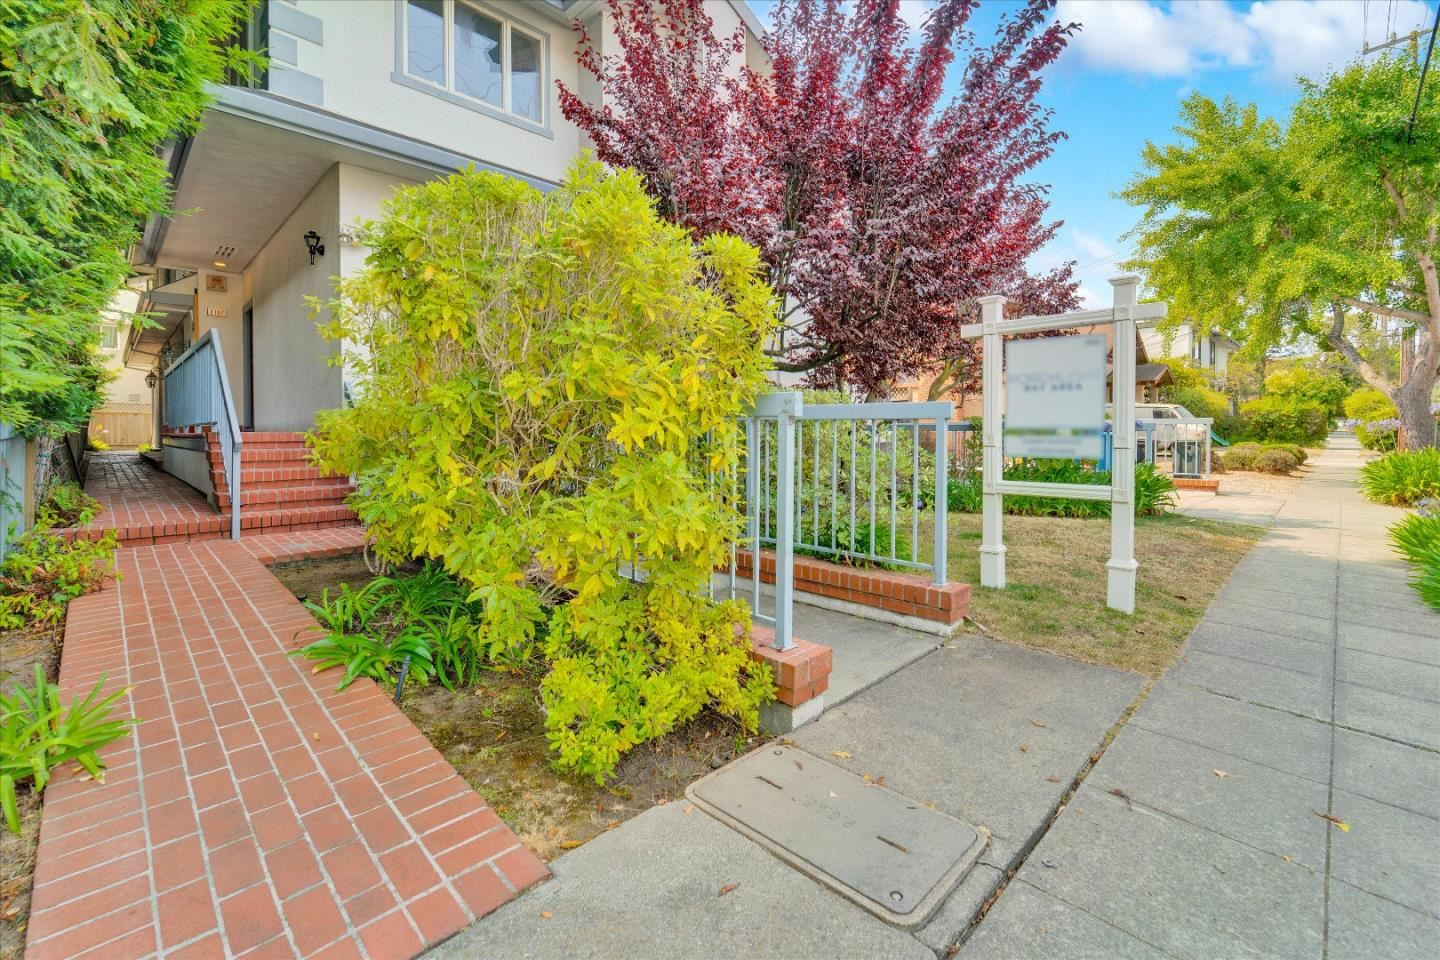 Photo for 1107 Bayswater Avenue, BURLINGAME, CA 94010 (MLS # ML81858009)